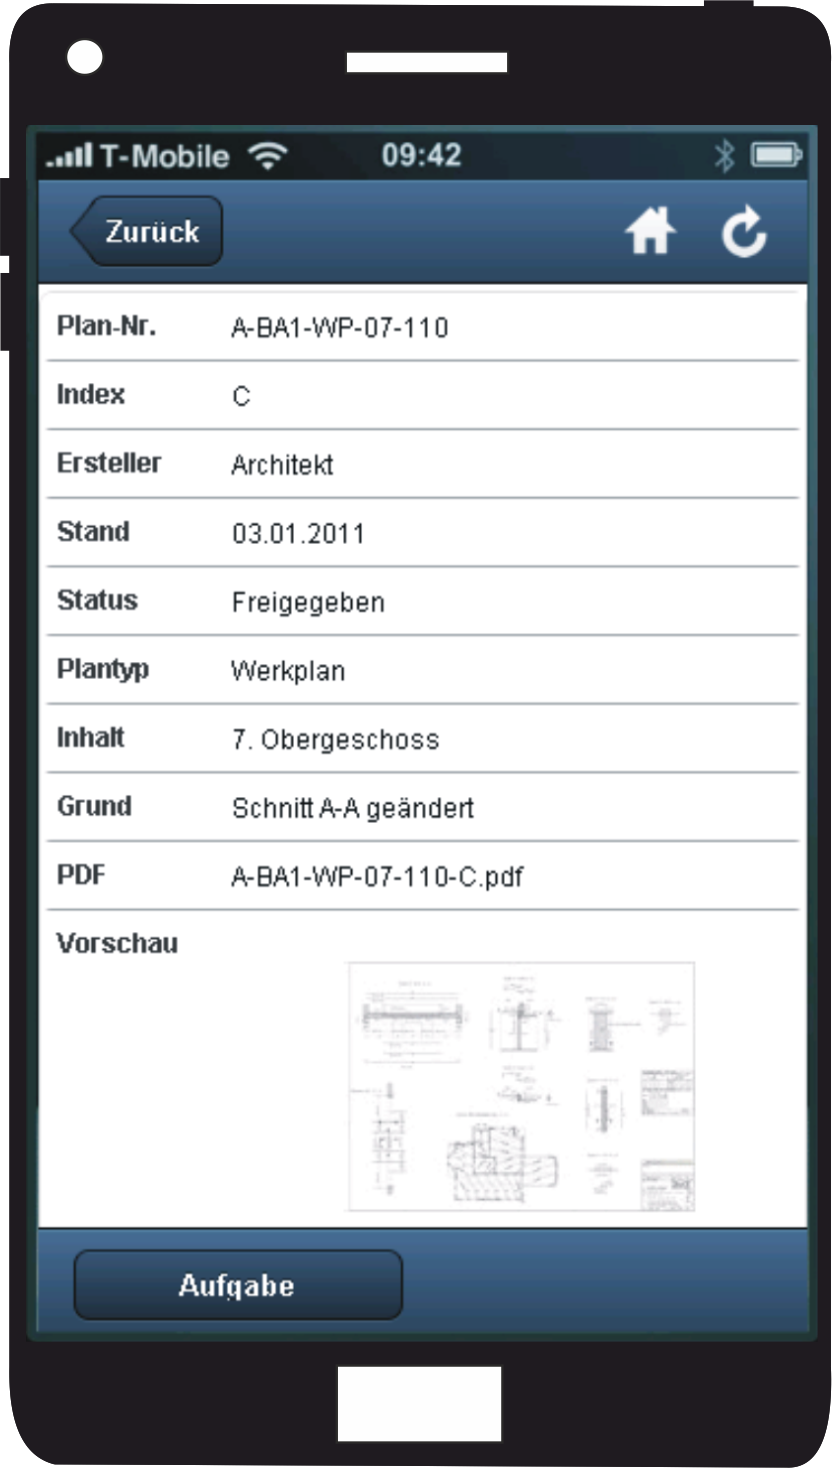 Ausgezeichnet Mobile Formularvorlage Fotos - Entry Level Resume ...